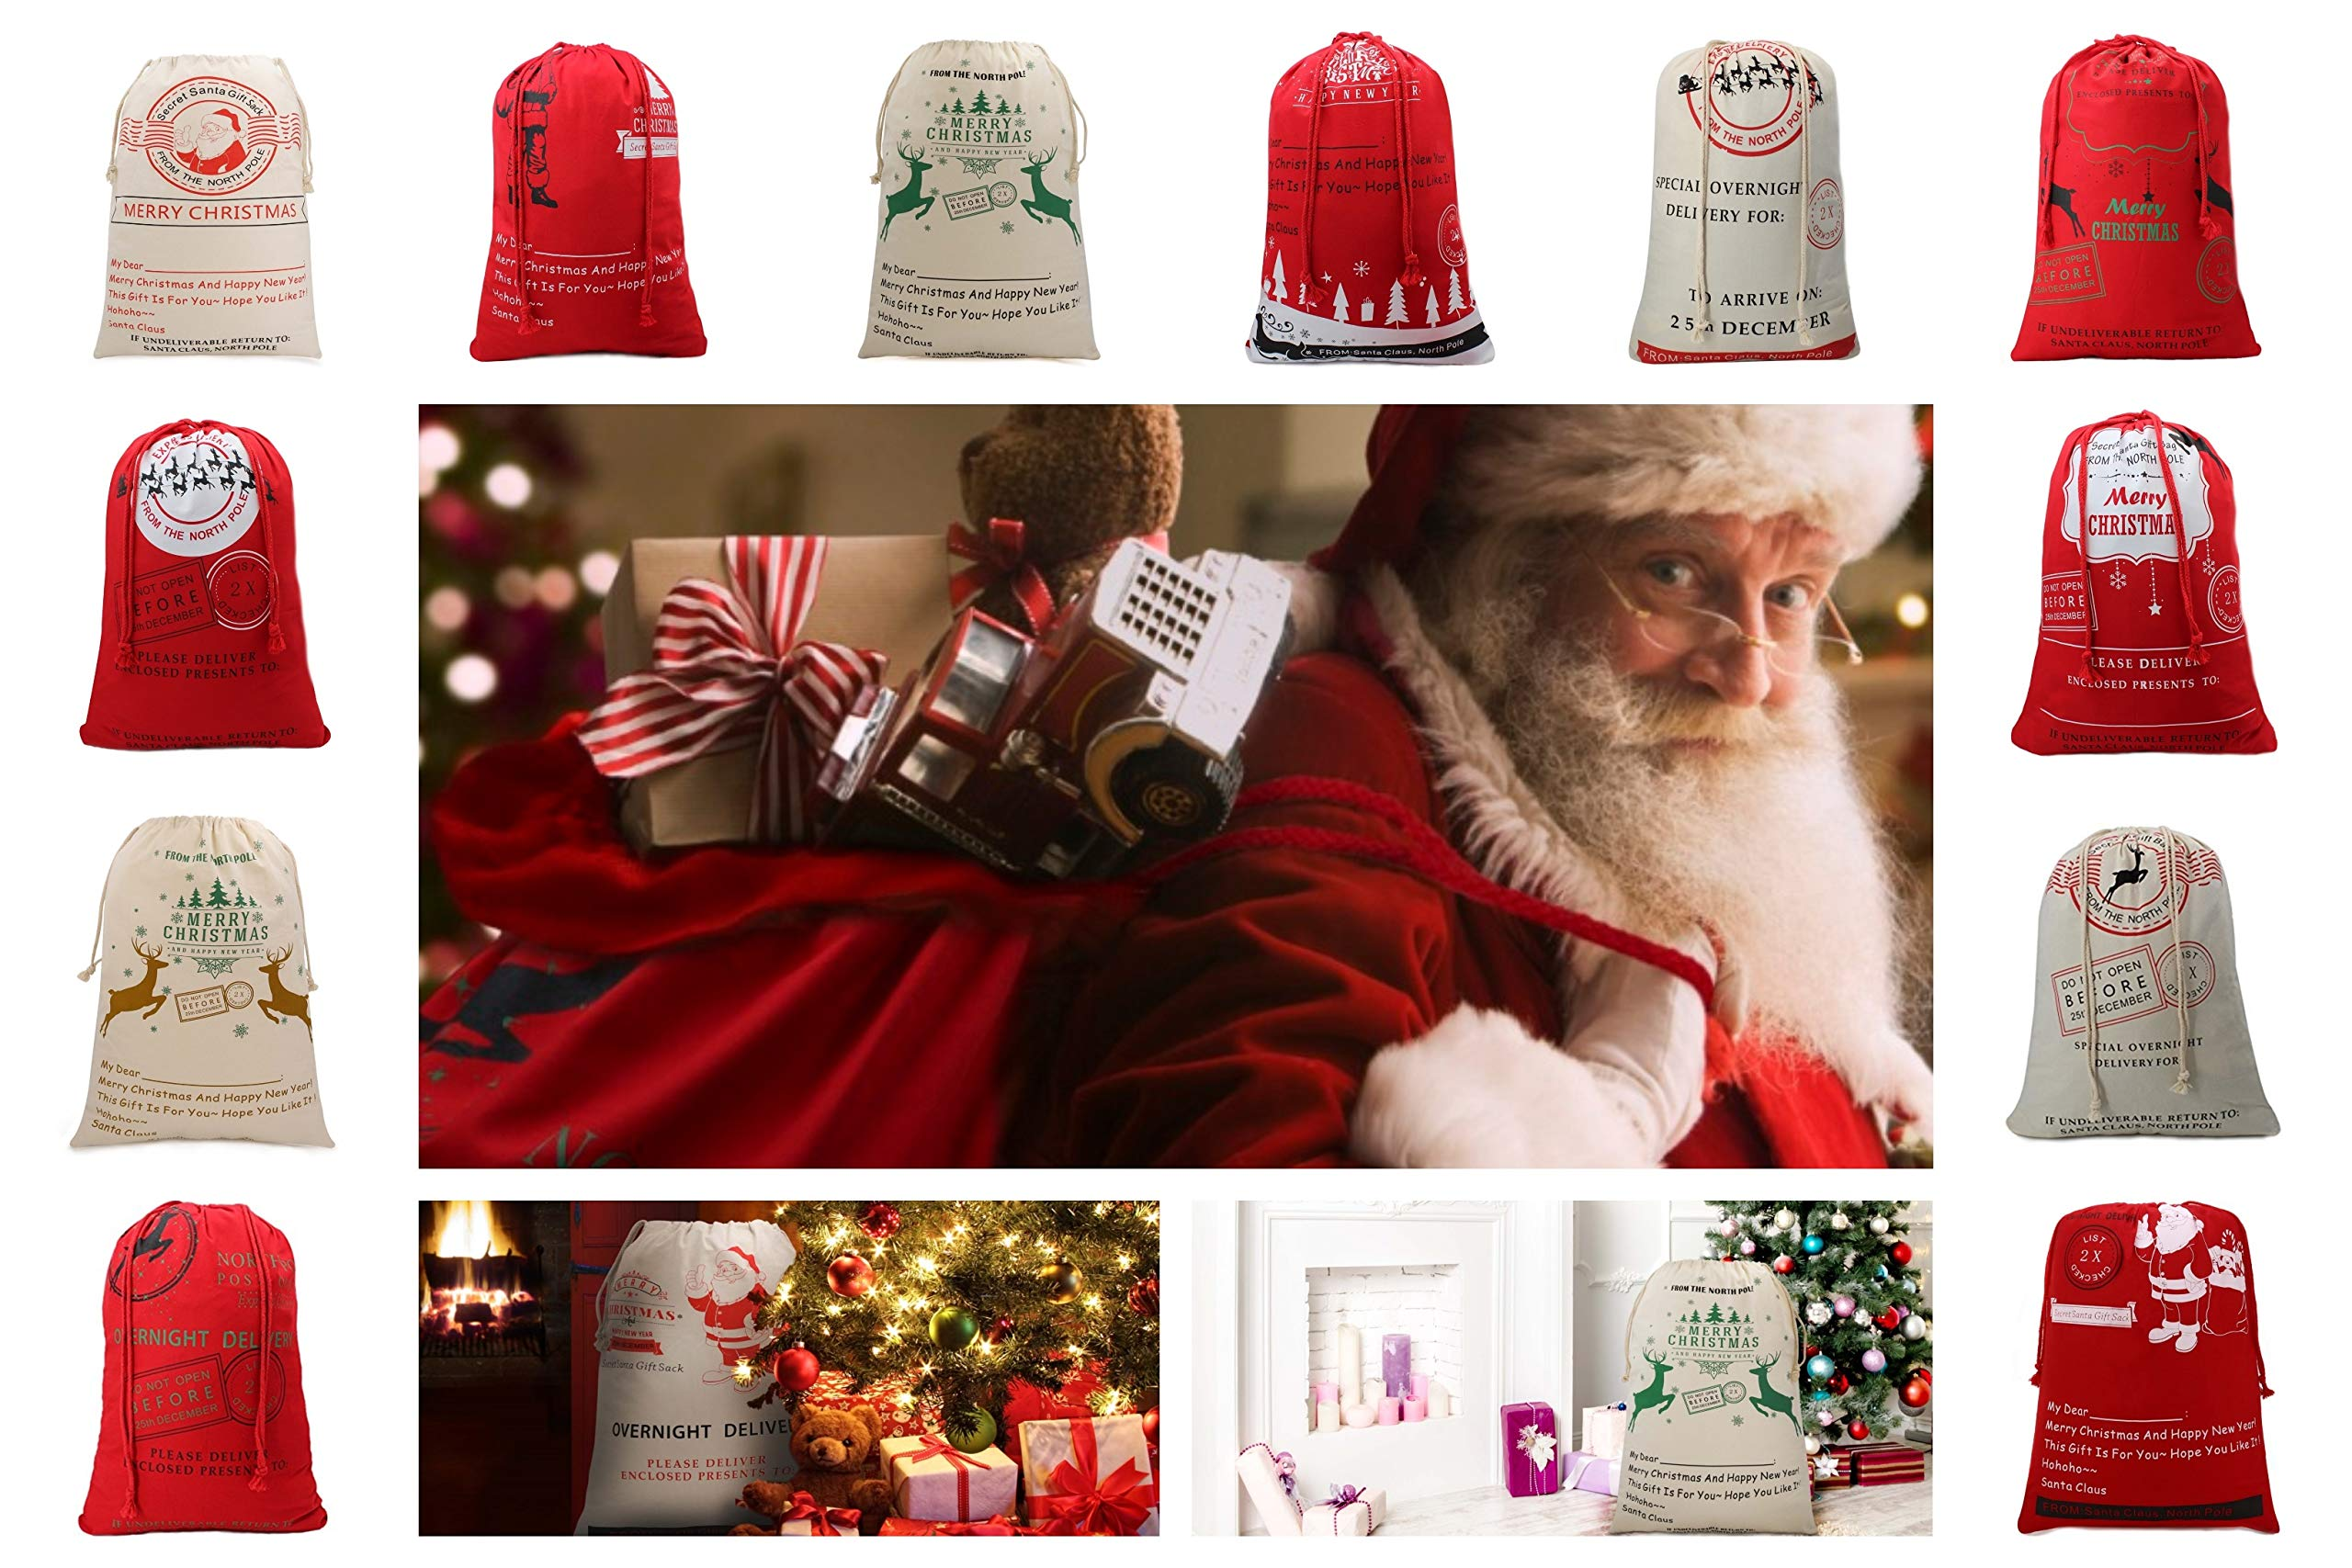 Christmas Santa Sack Reindeer Delivery Present Bags from North Pole Bags for Kids Large Christmas Decoration Stocking (12 Pack)